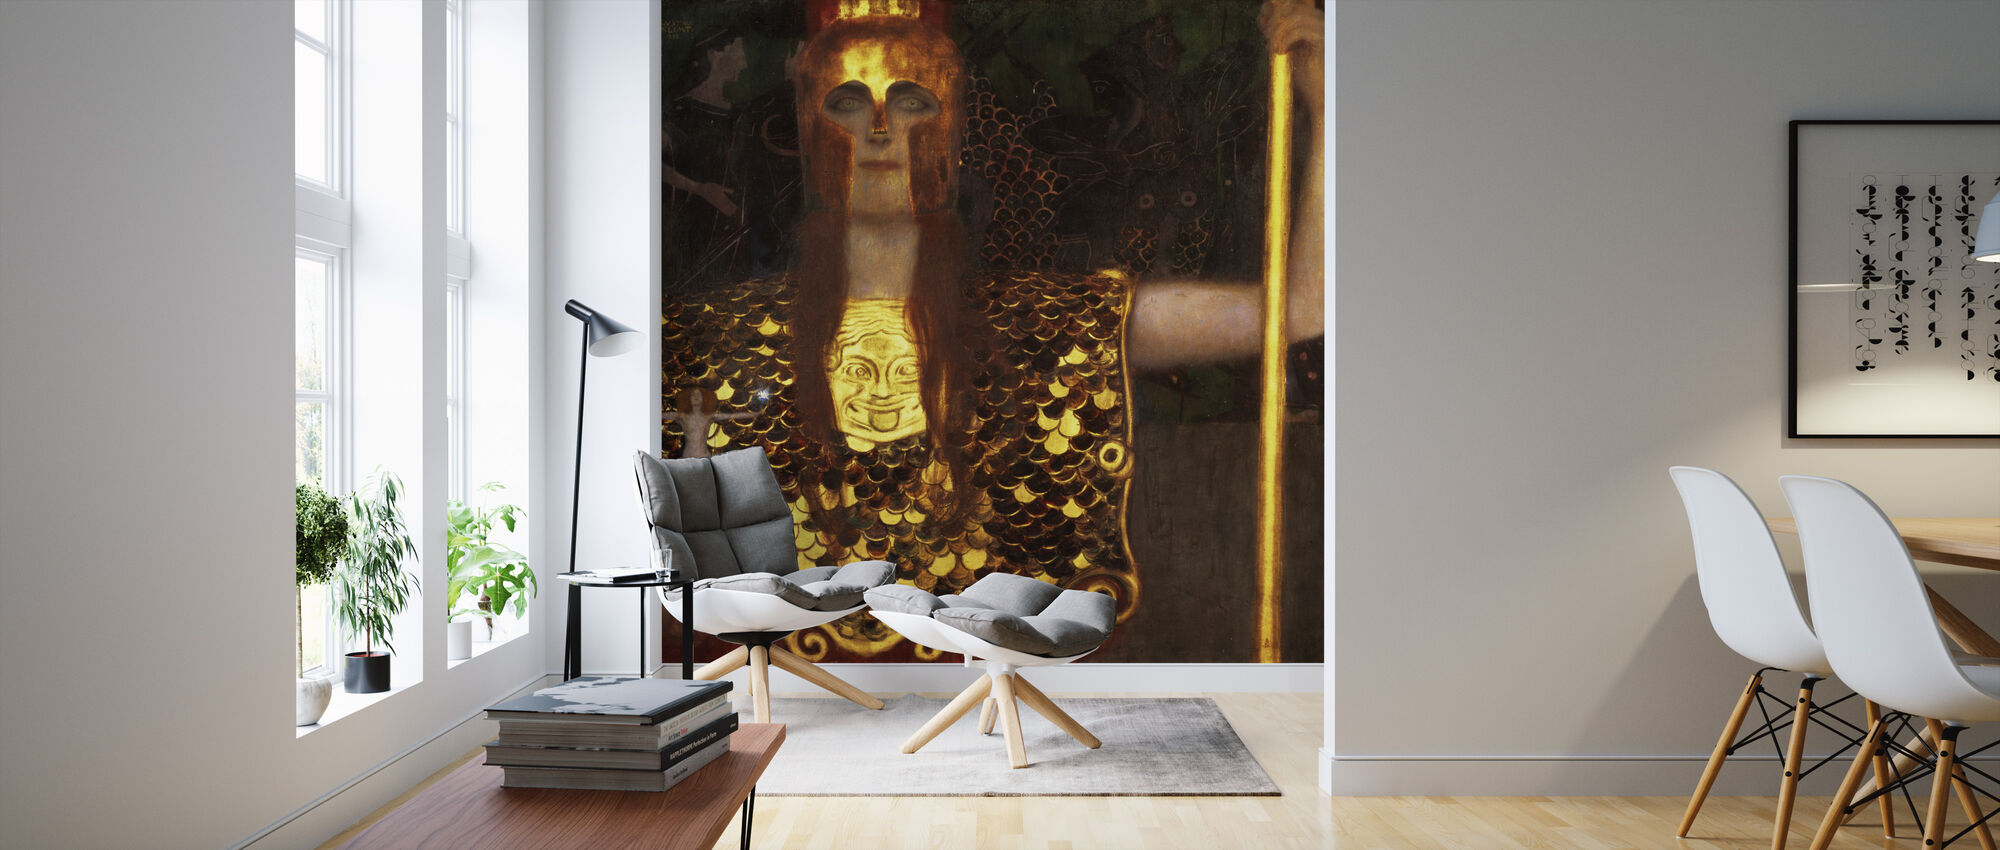 Minerva or Pallas Athena, Gustav Klimt - Wallpaper - Living Room